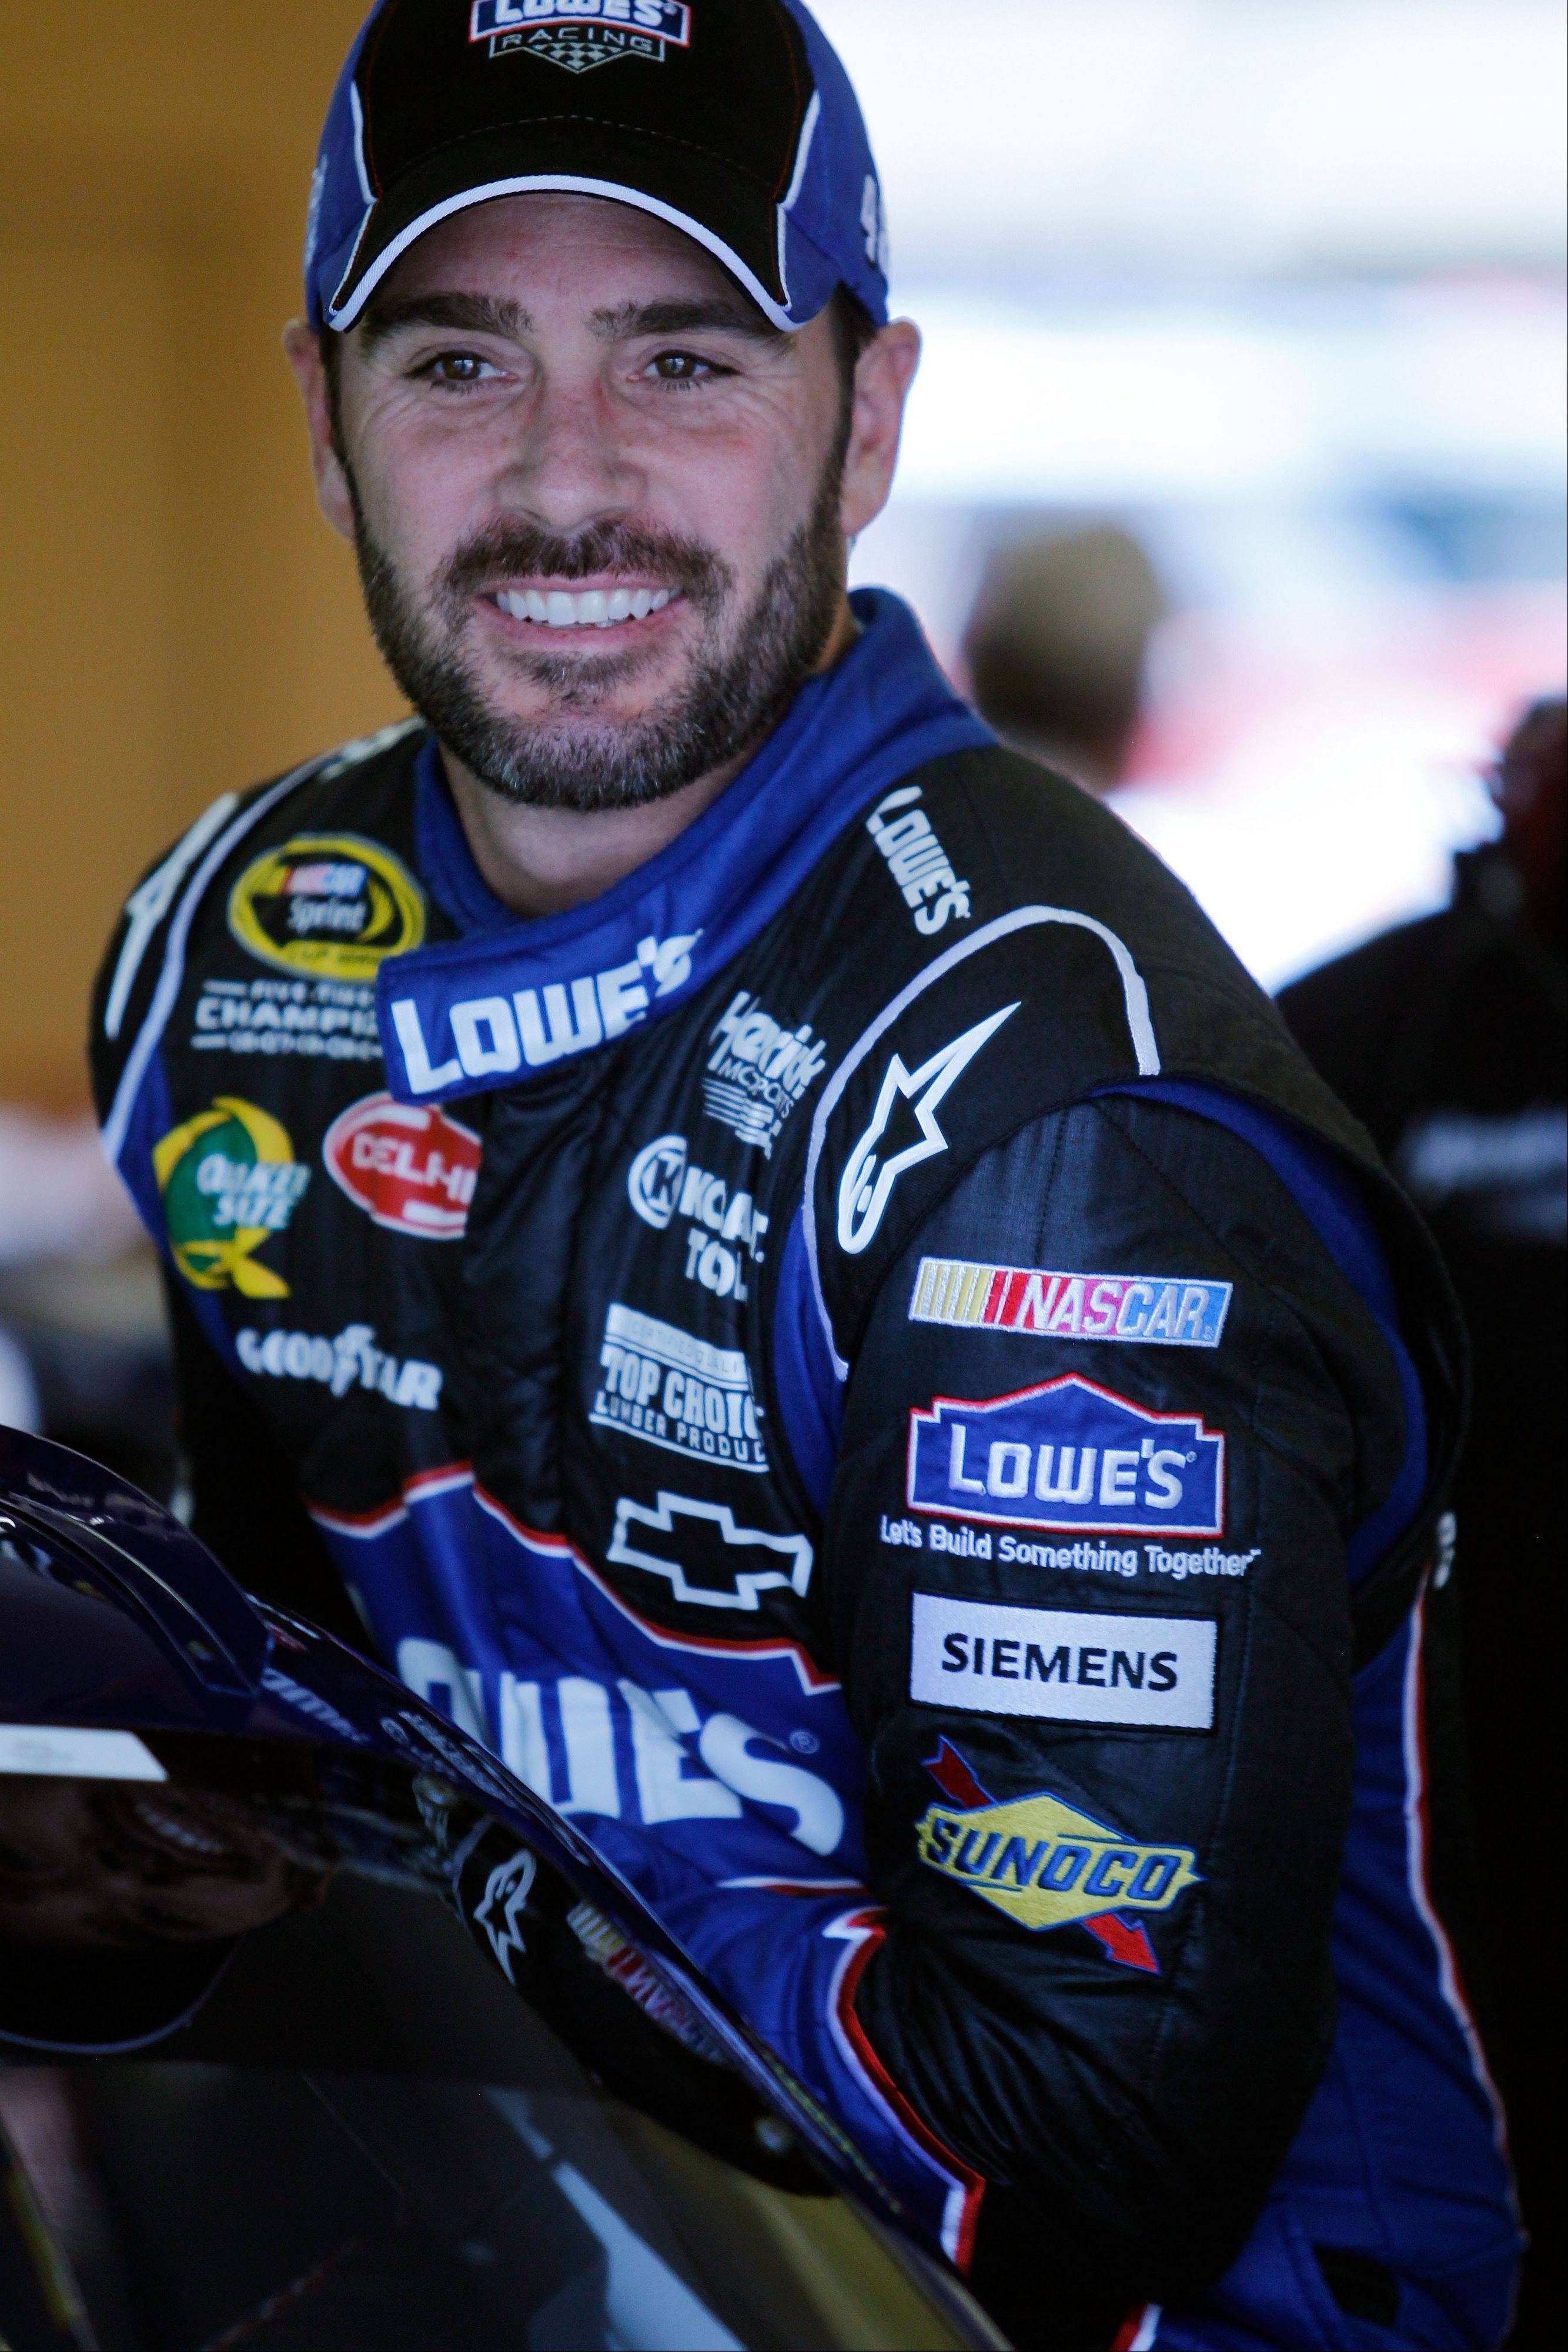 Jimmie Johnson says he has no problem finding motivation after winning five consecutive Sprint Cup championships. His quest for No. 6 begins this weekend at Chicagoland Speedway with the first race of the Chase for the NASCAR Sprint Cup. .